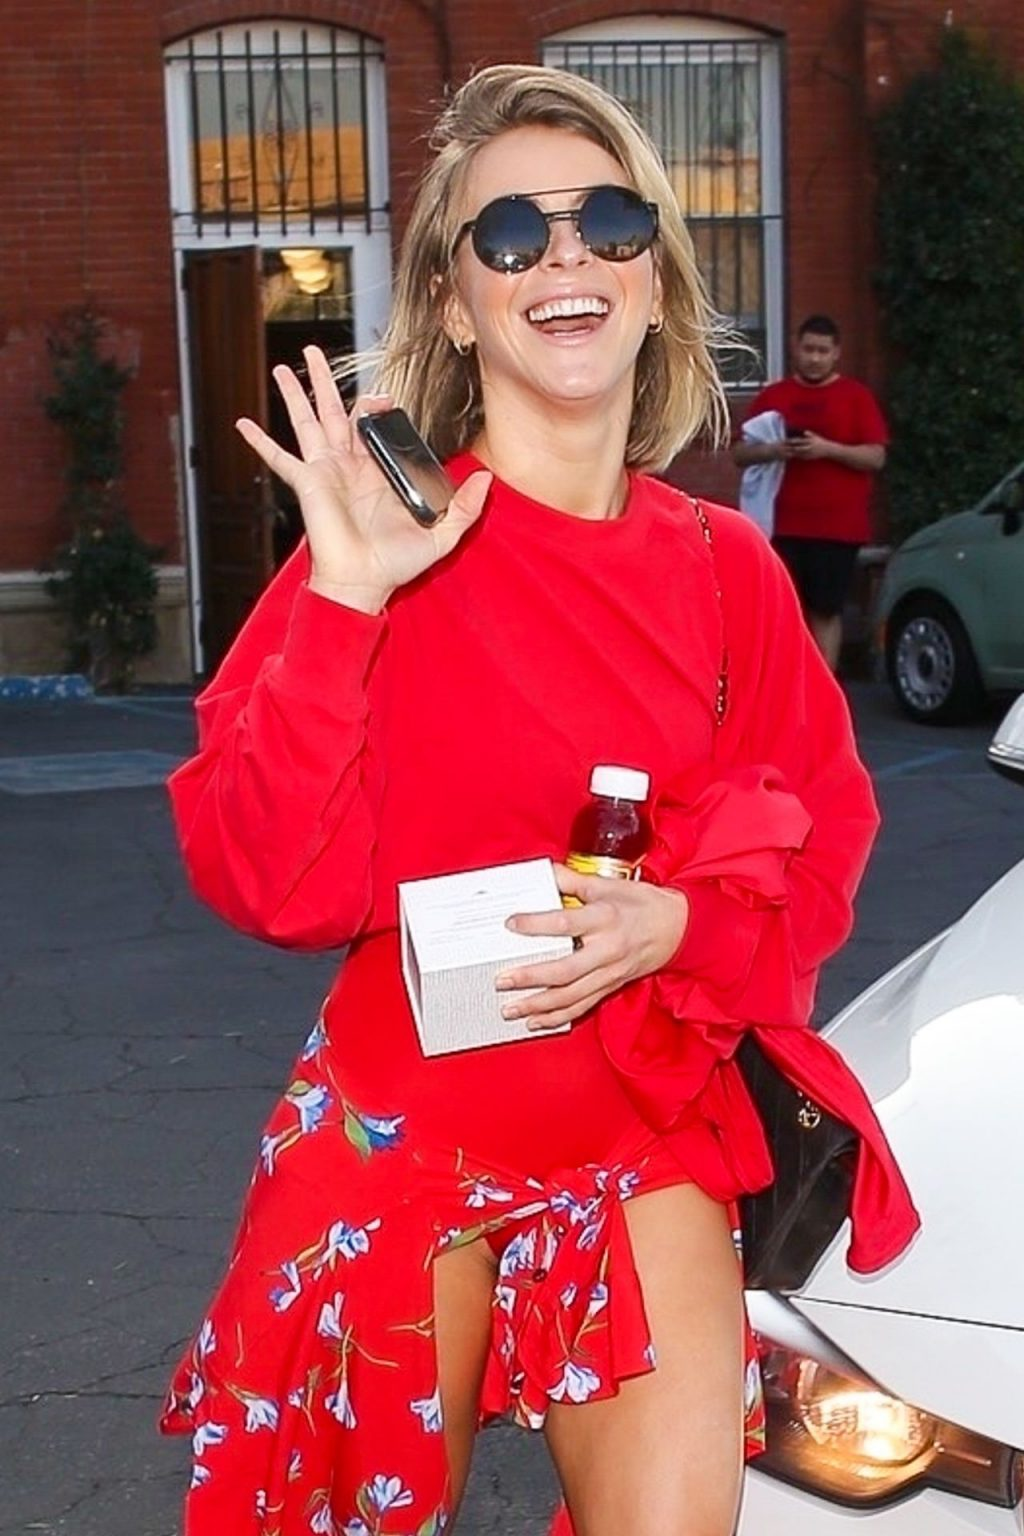 Julianne Hough & Brooks Laich Appear Over the Moon as They Exit Pico Union Project in Downtown LA (13 Photos)